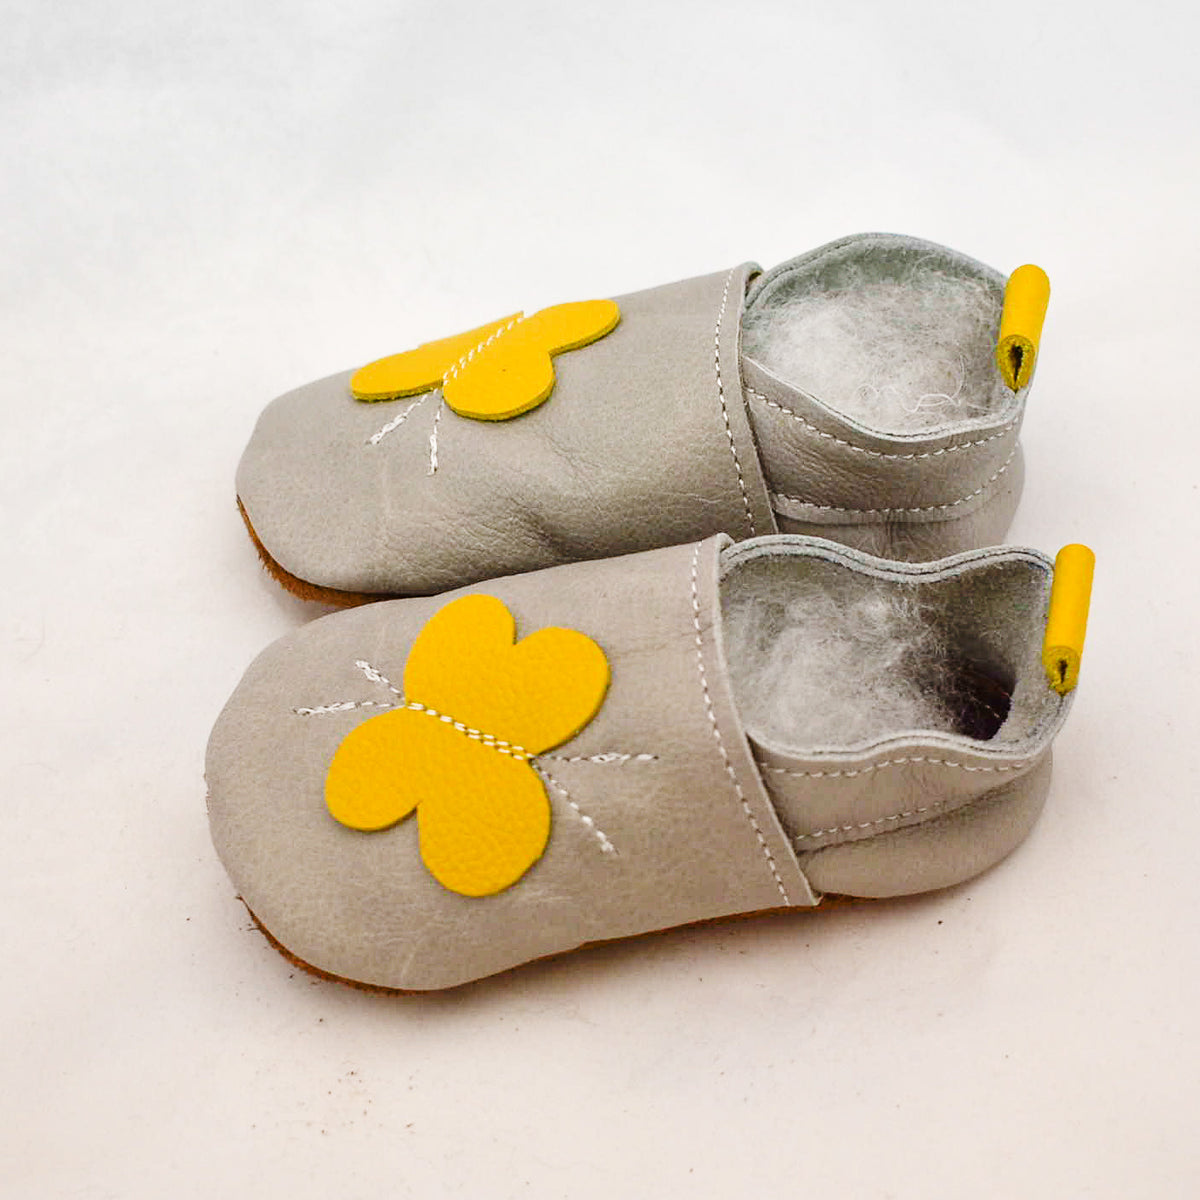 Soft soled leather shoes - Medium (6 - 12 months)